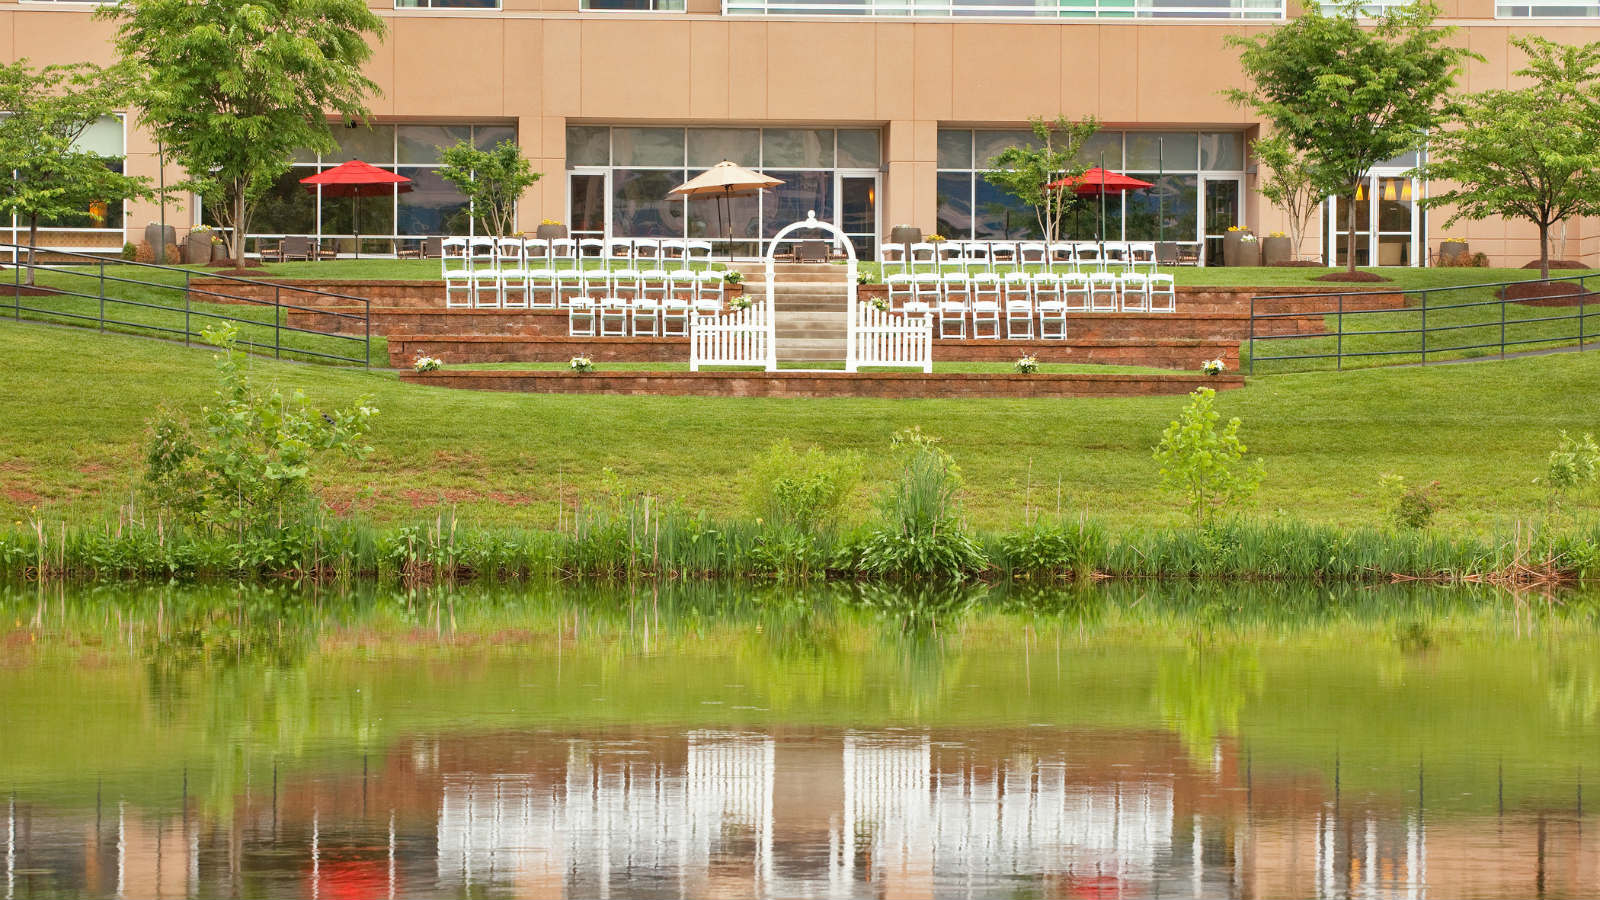 Wedding Venues in Northern Virginia - Outdoor Event Venues